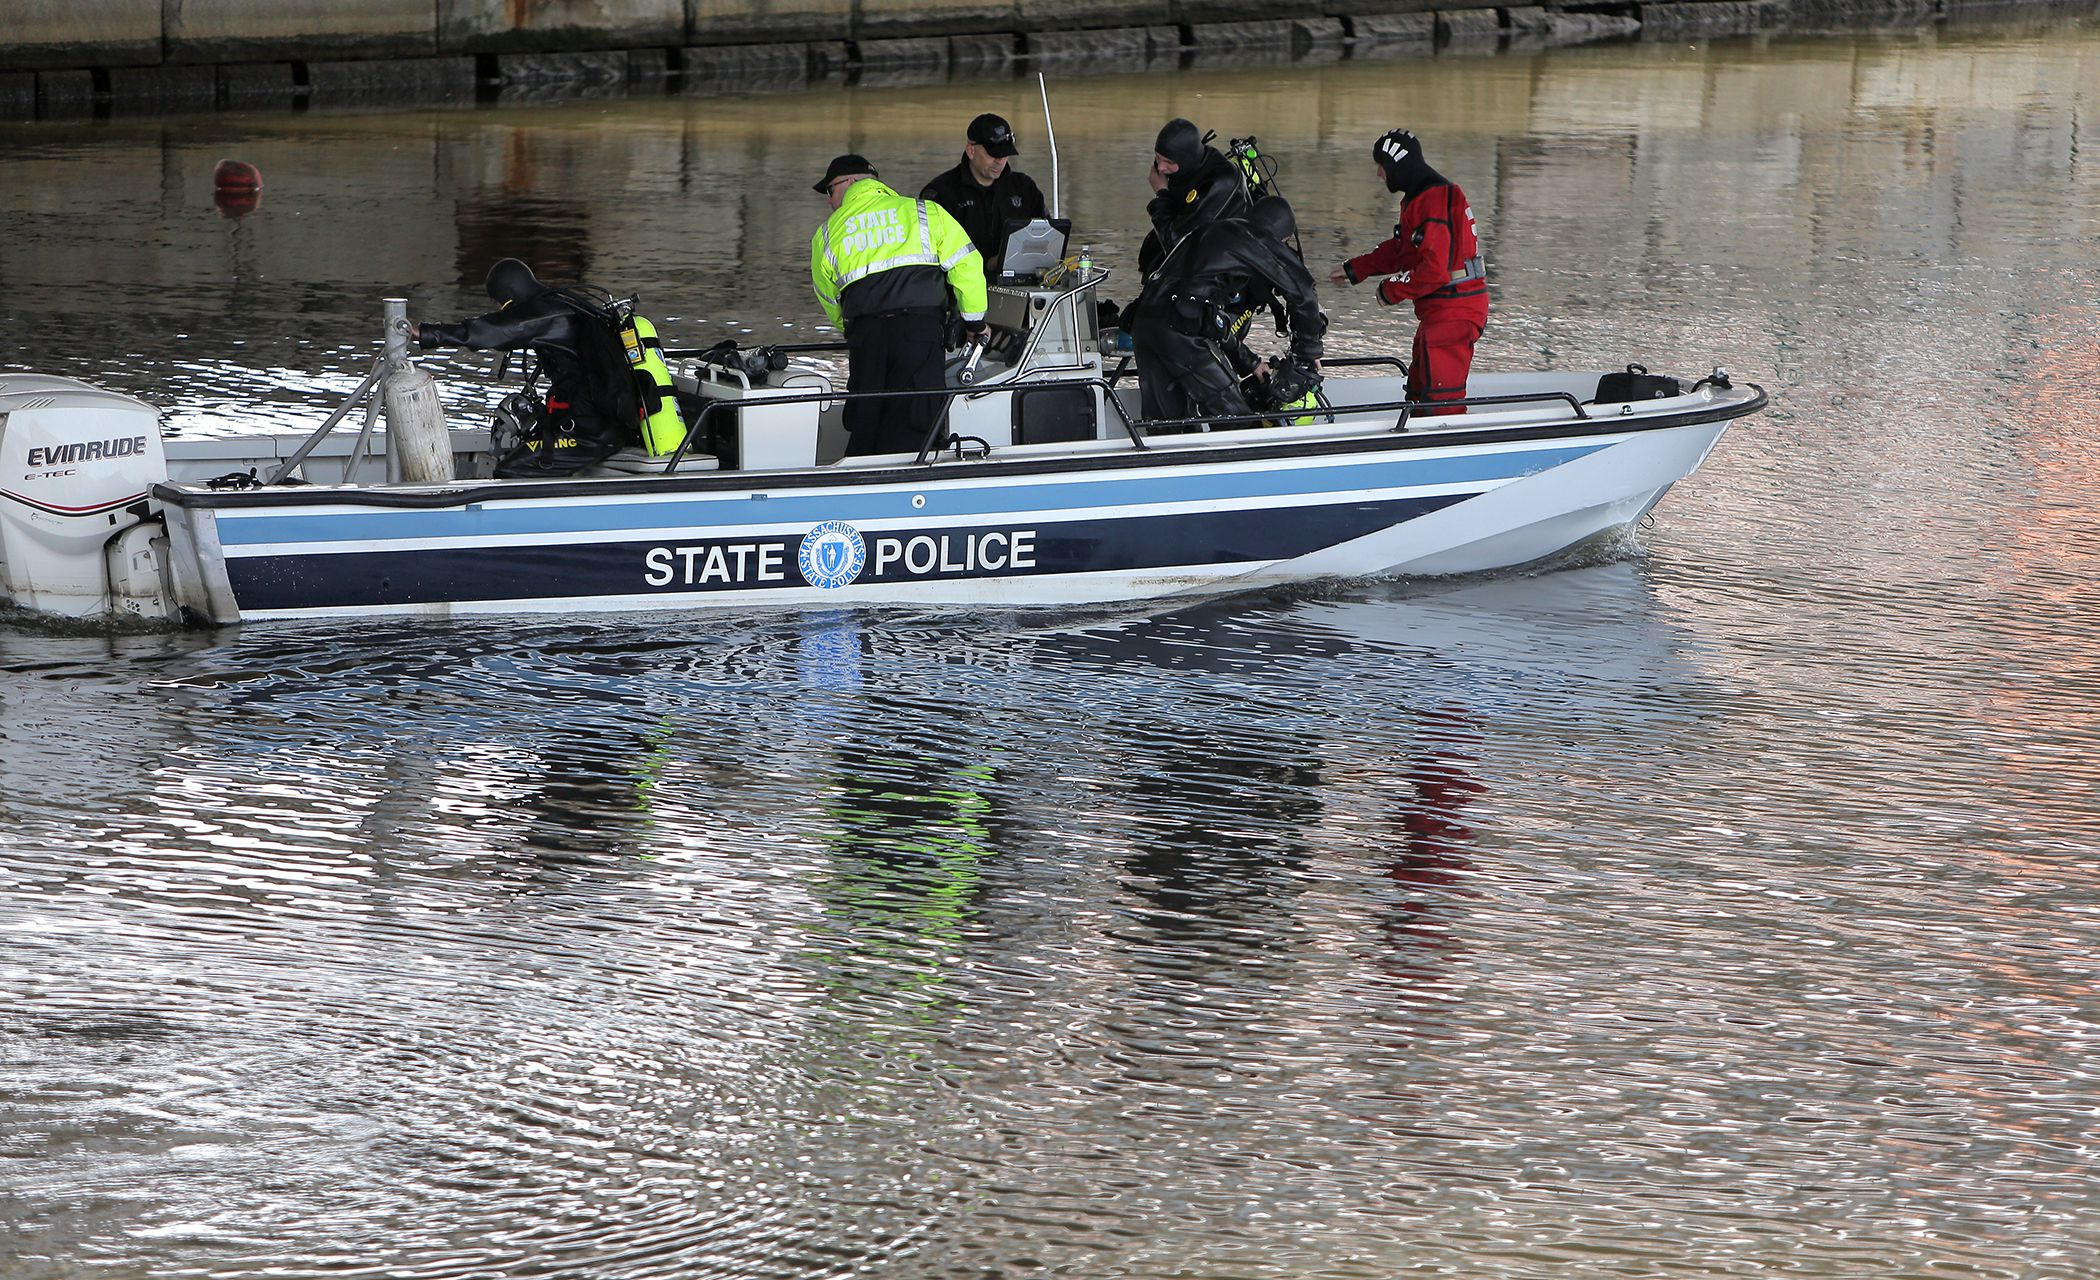 In search for the missing, authorities often turn to